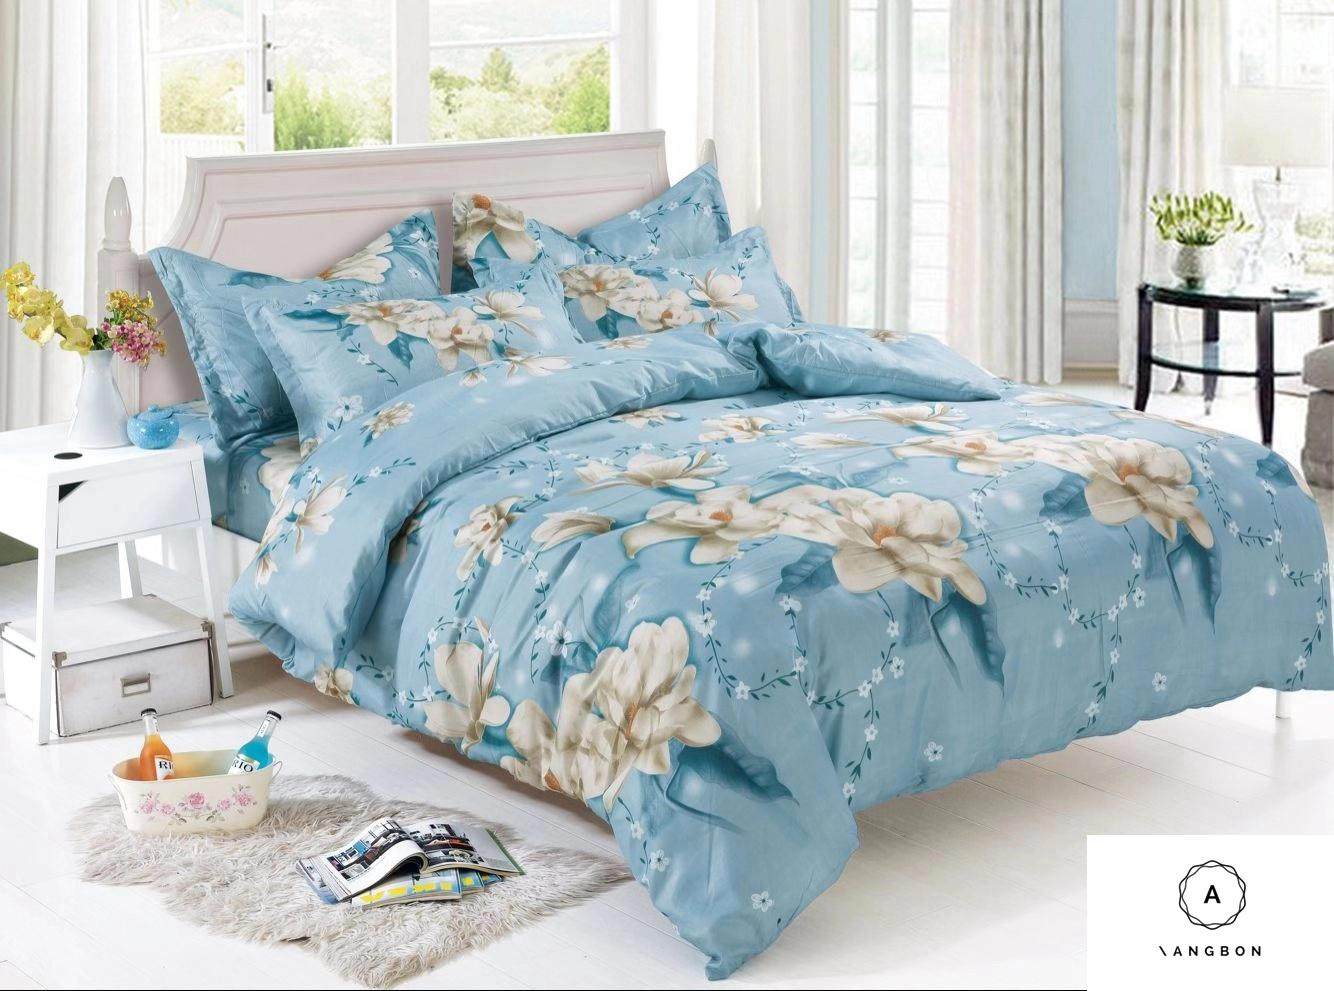 d17230856f Bedding Sets for sale - Bedding Set prices, brands & review in ...